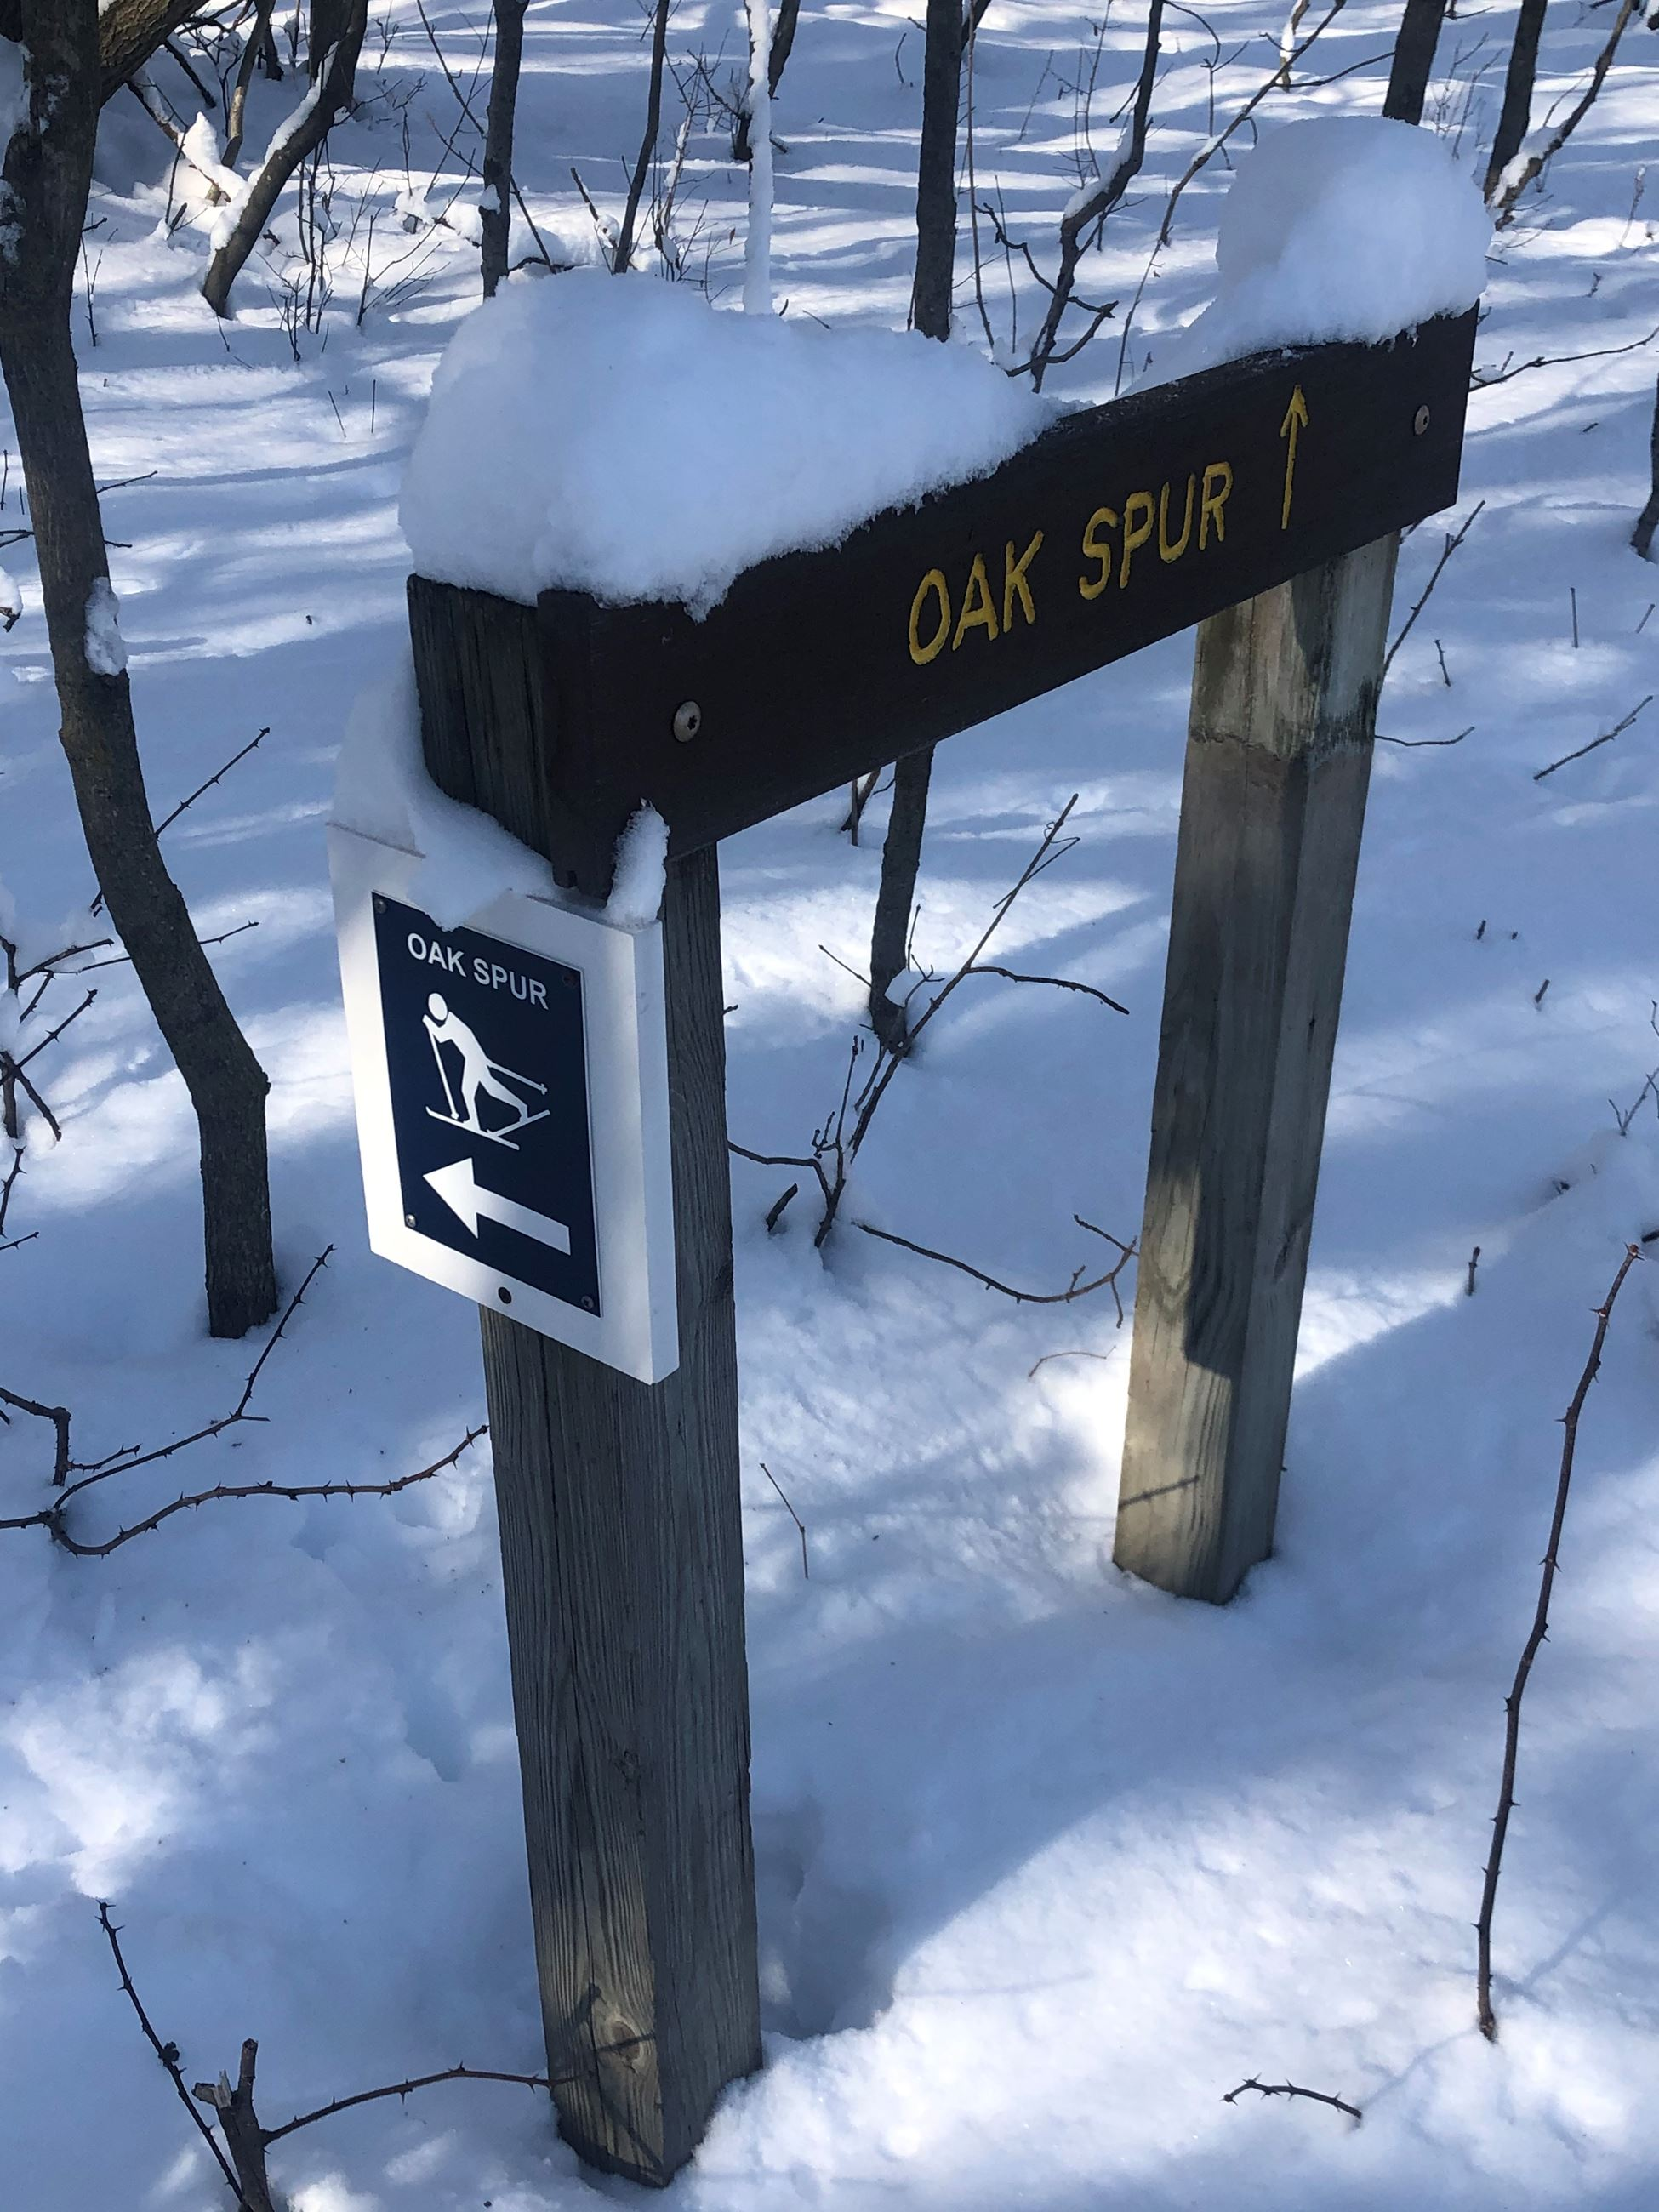 A brown trail sign that says 'Oak Spur' with a blue and white cross country ski sign on the si